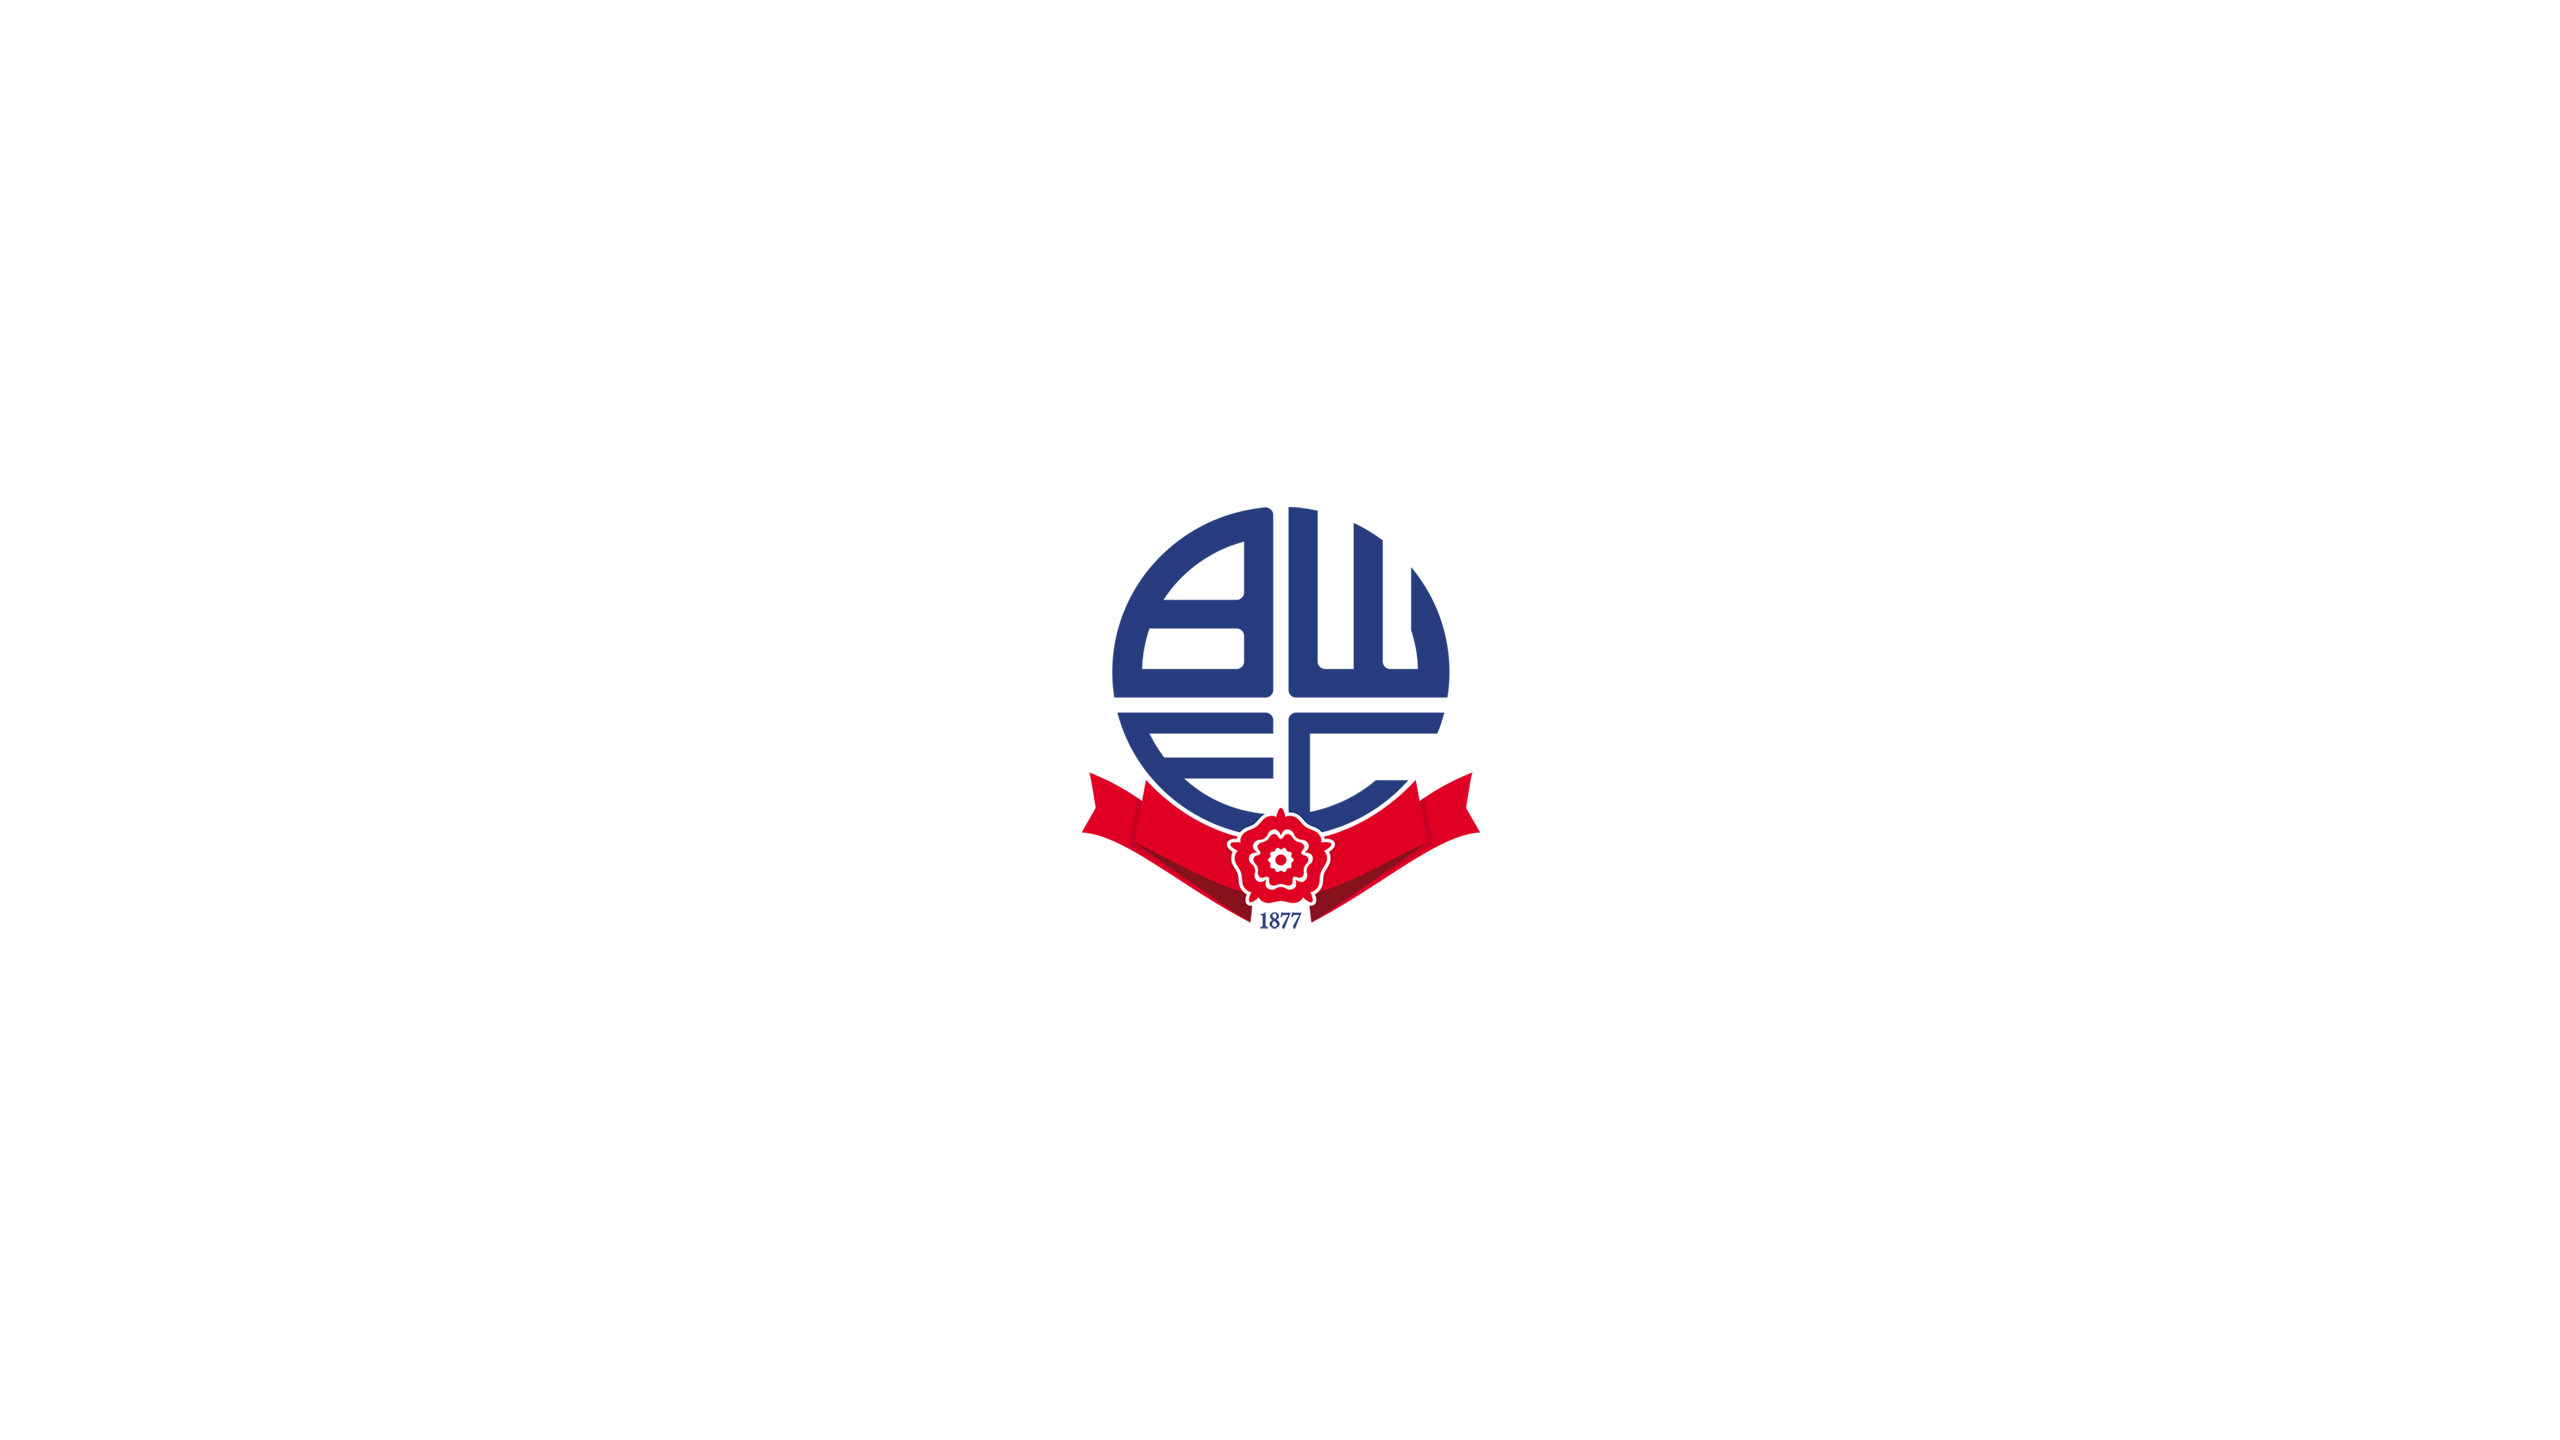 Bolton Wanderers FC